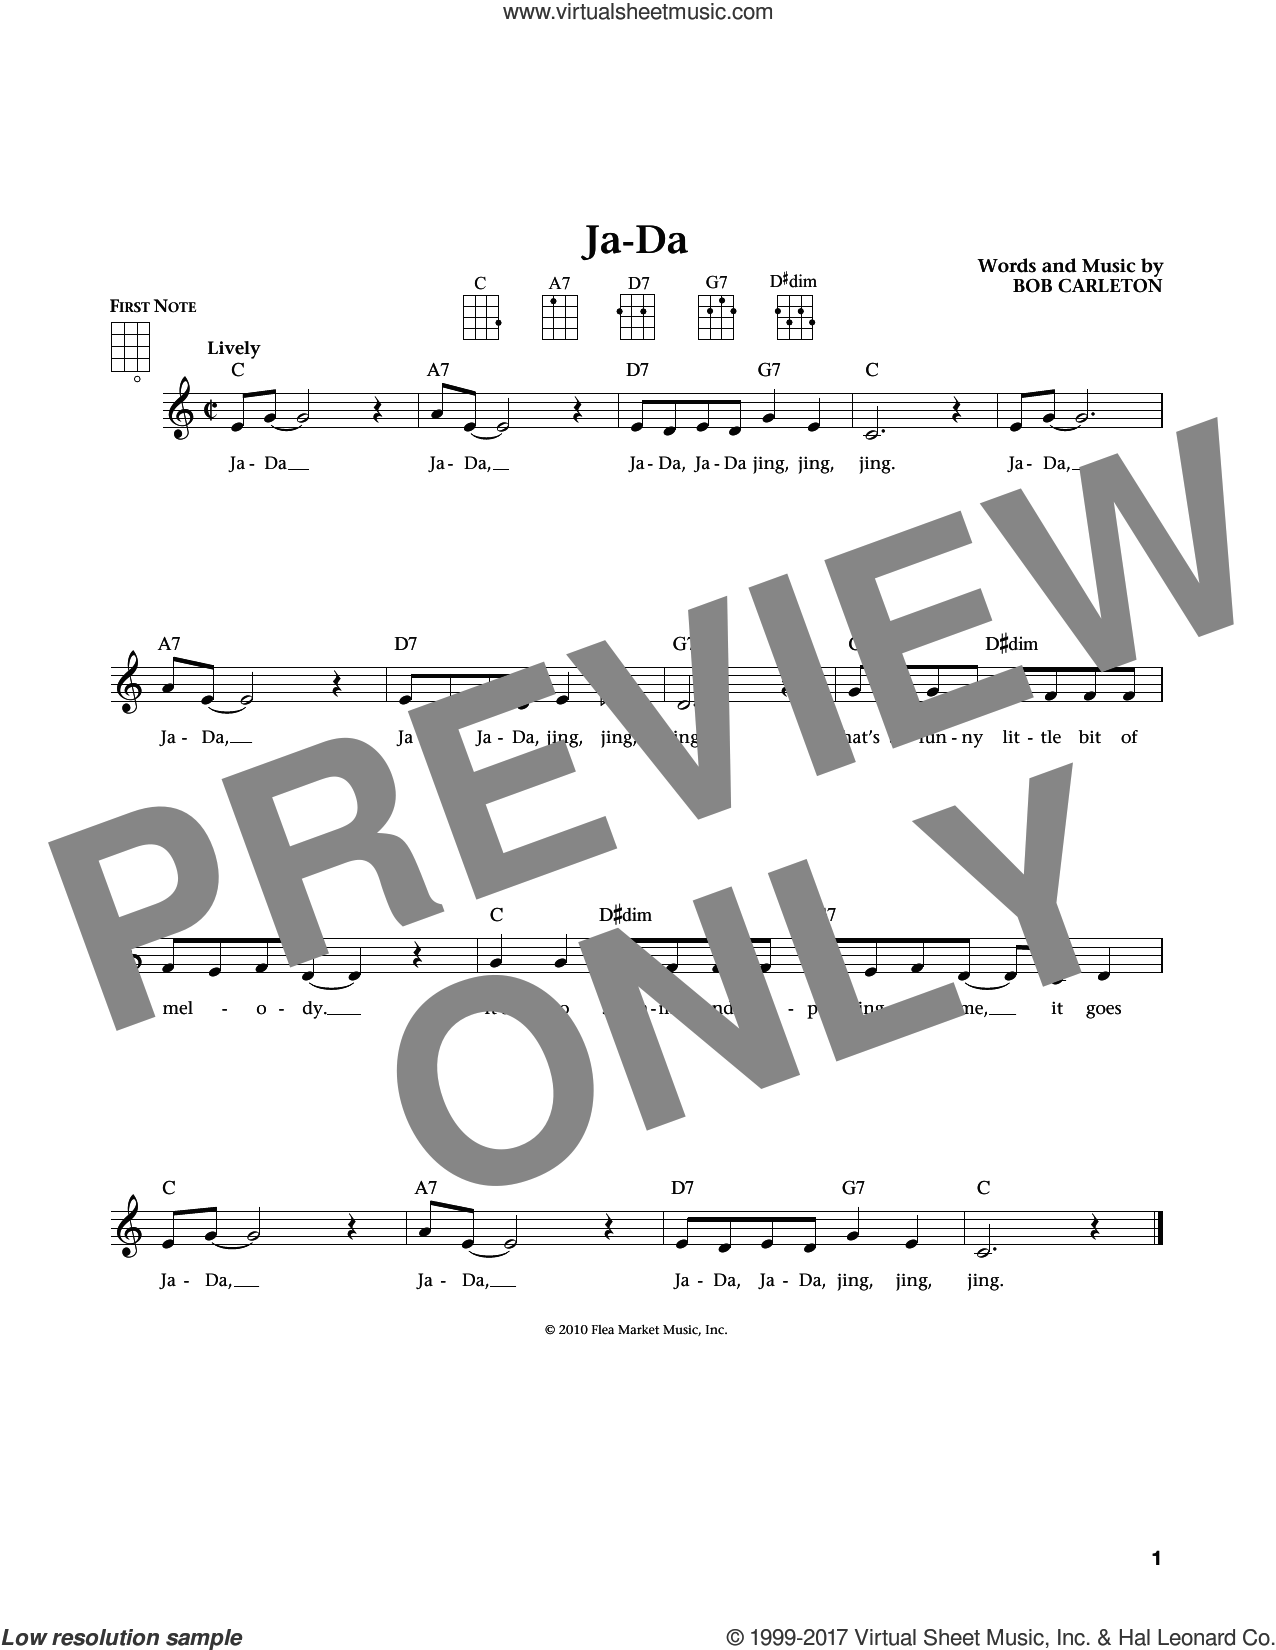 Ja-Da (from The Daily Ukulele) (arr. Liz and Jim Beloff) sheet music for ukulele by Bob Carleton, Jim Beloff and Liz Beloff, intermediate skill level